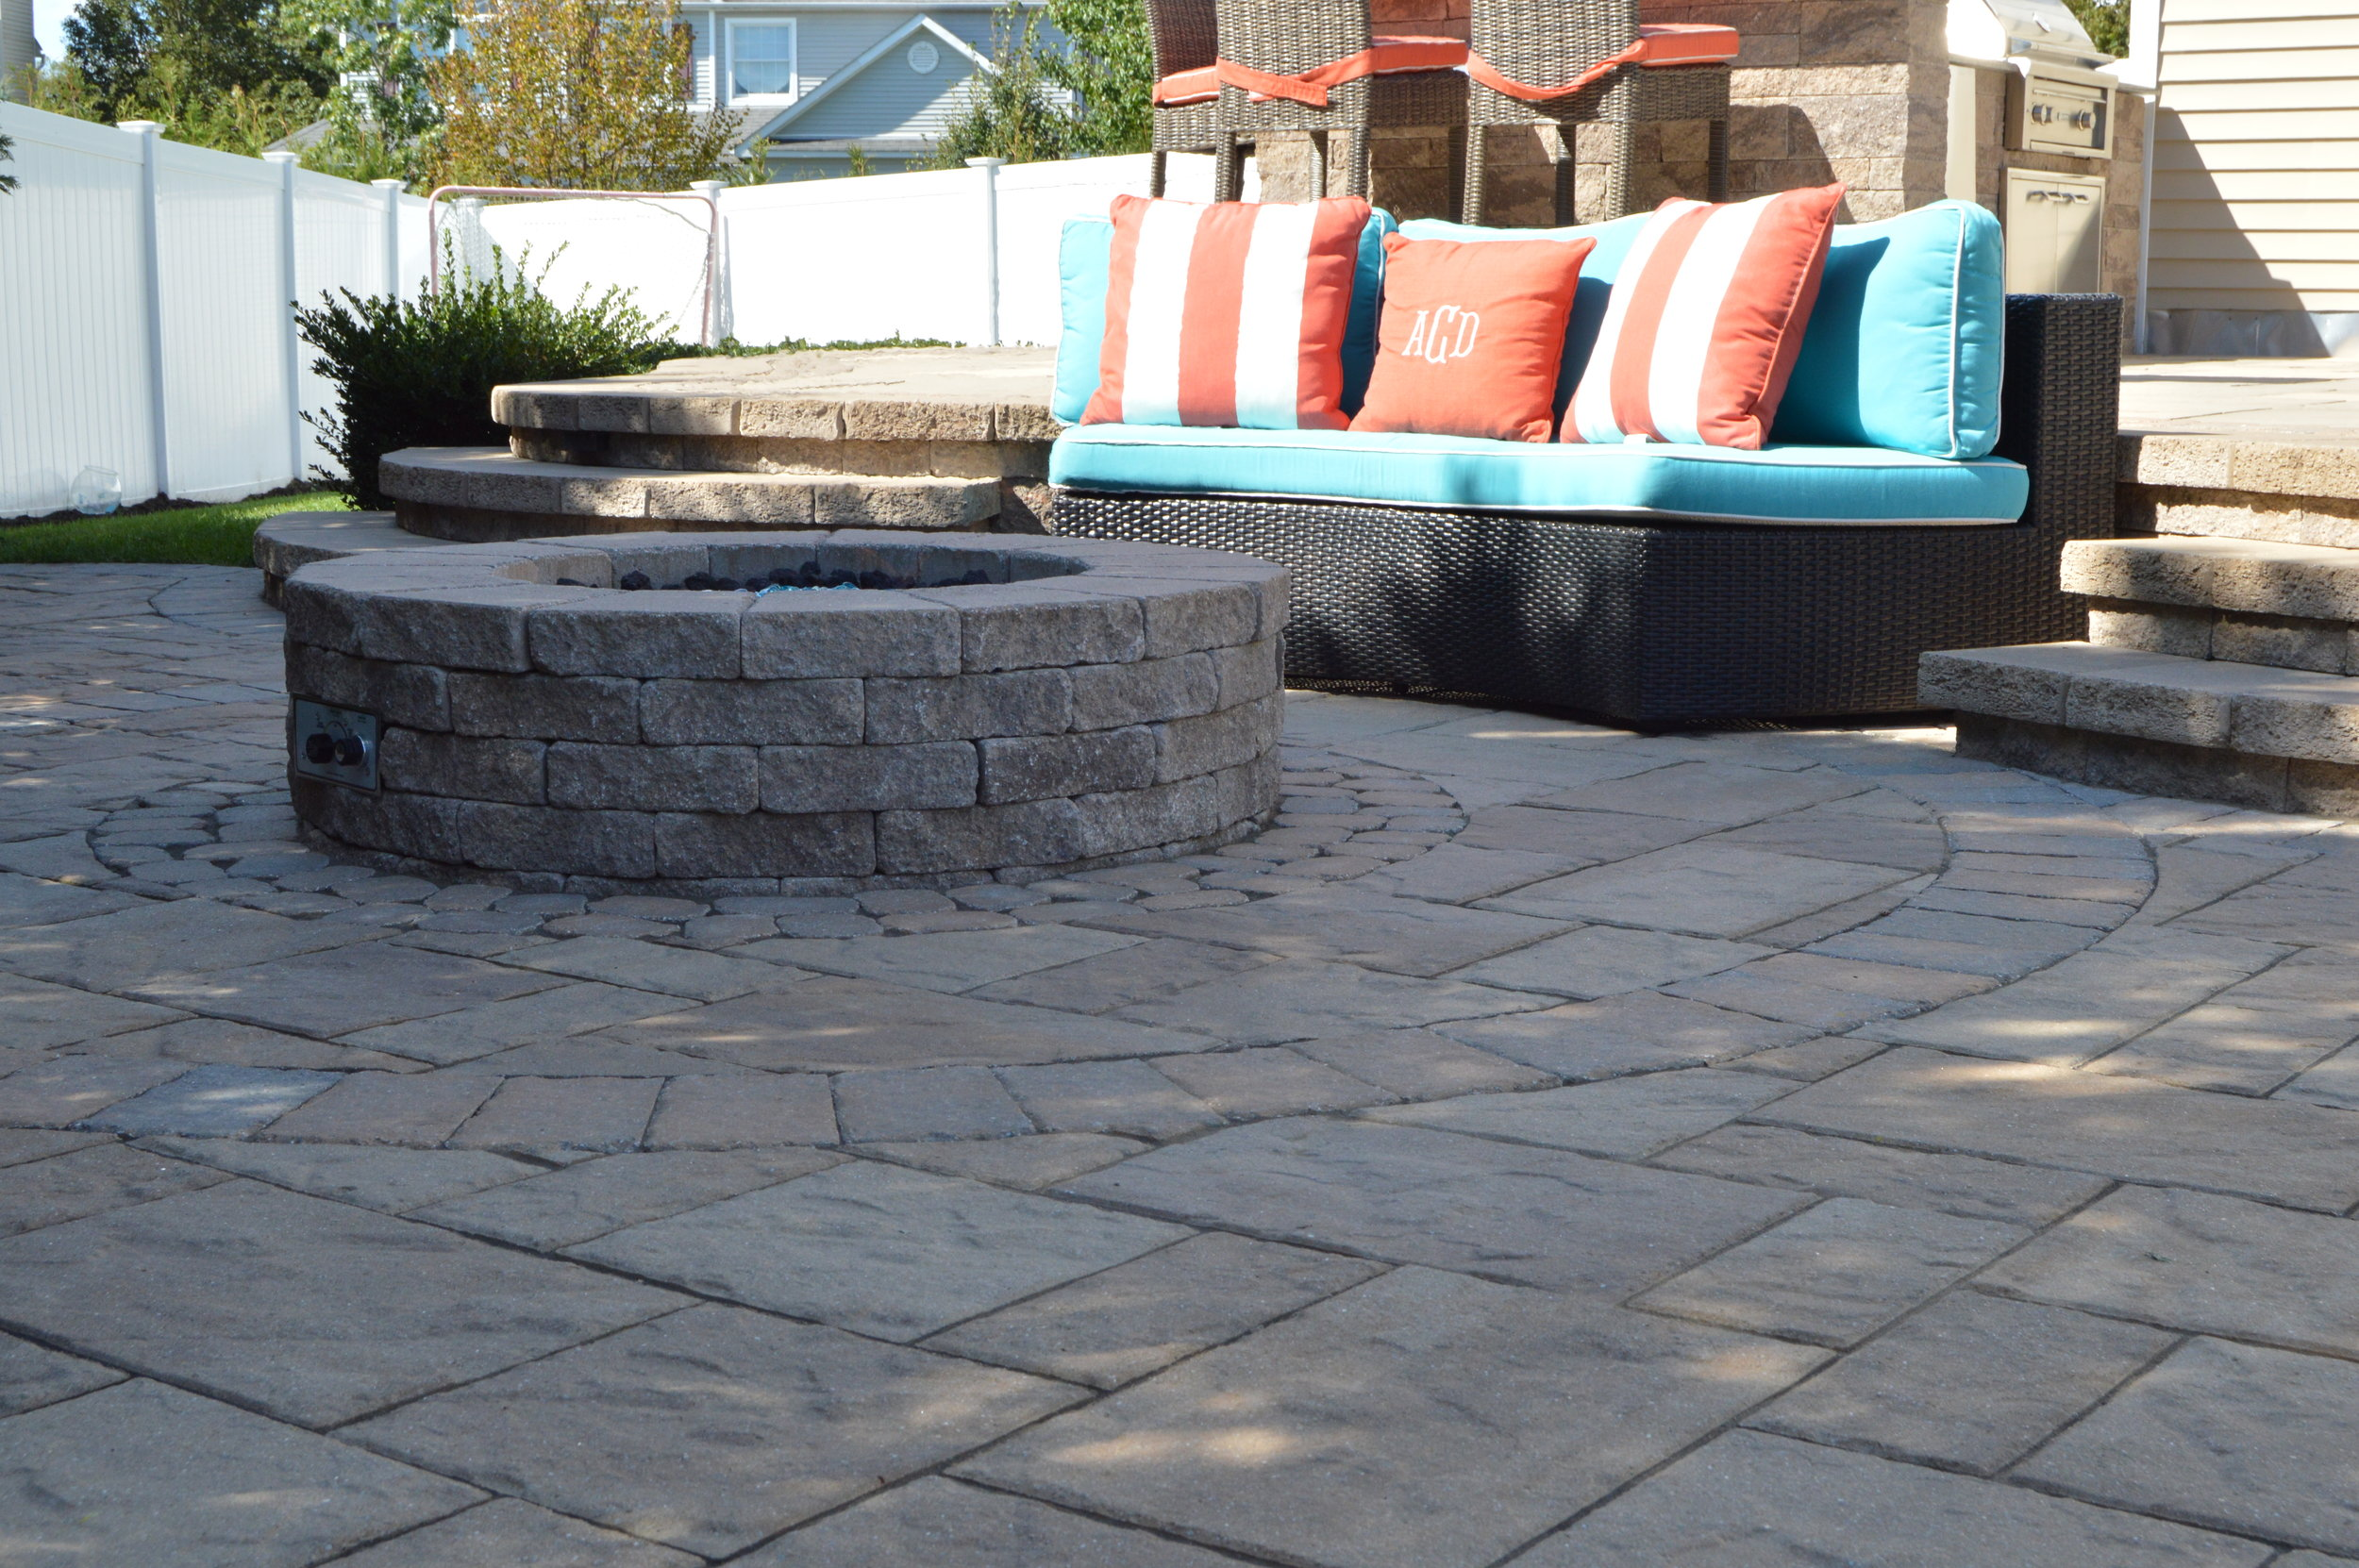 Smithtown, NY swimming pool and paver fire pit